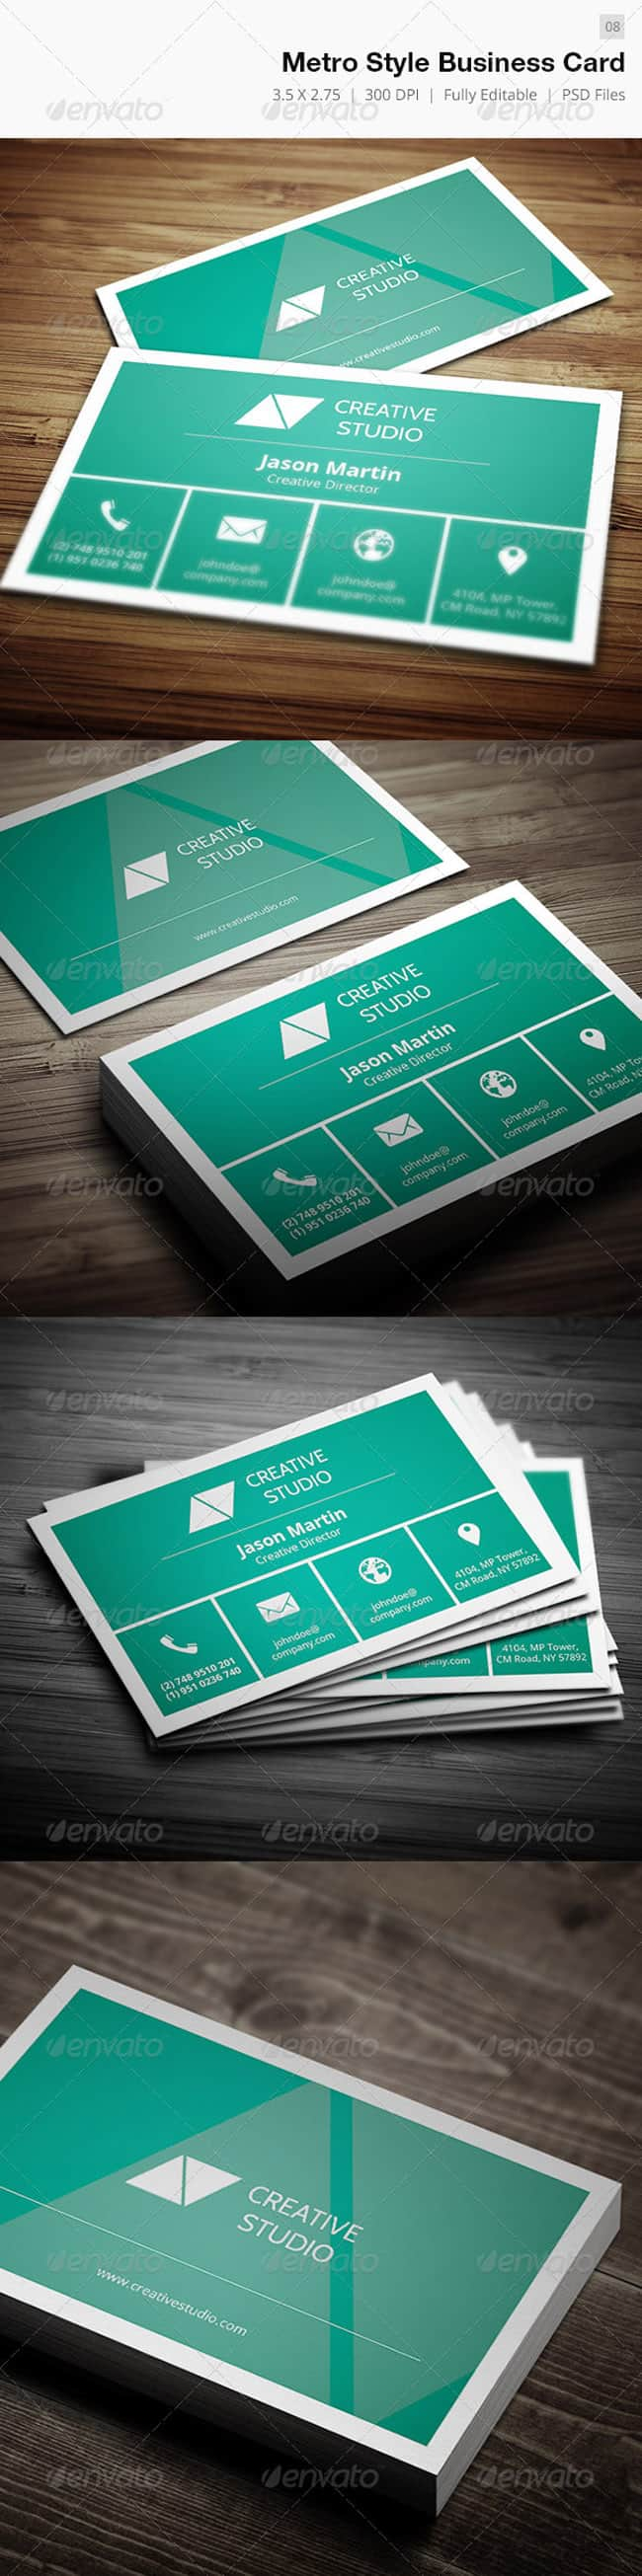 Metro Style Business Card - 08